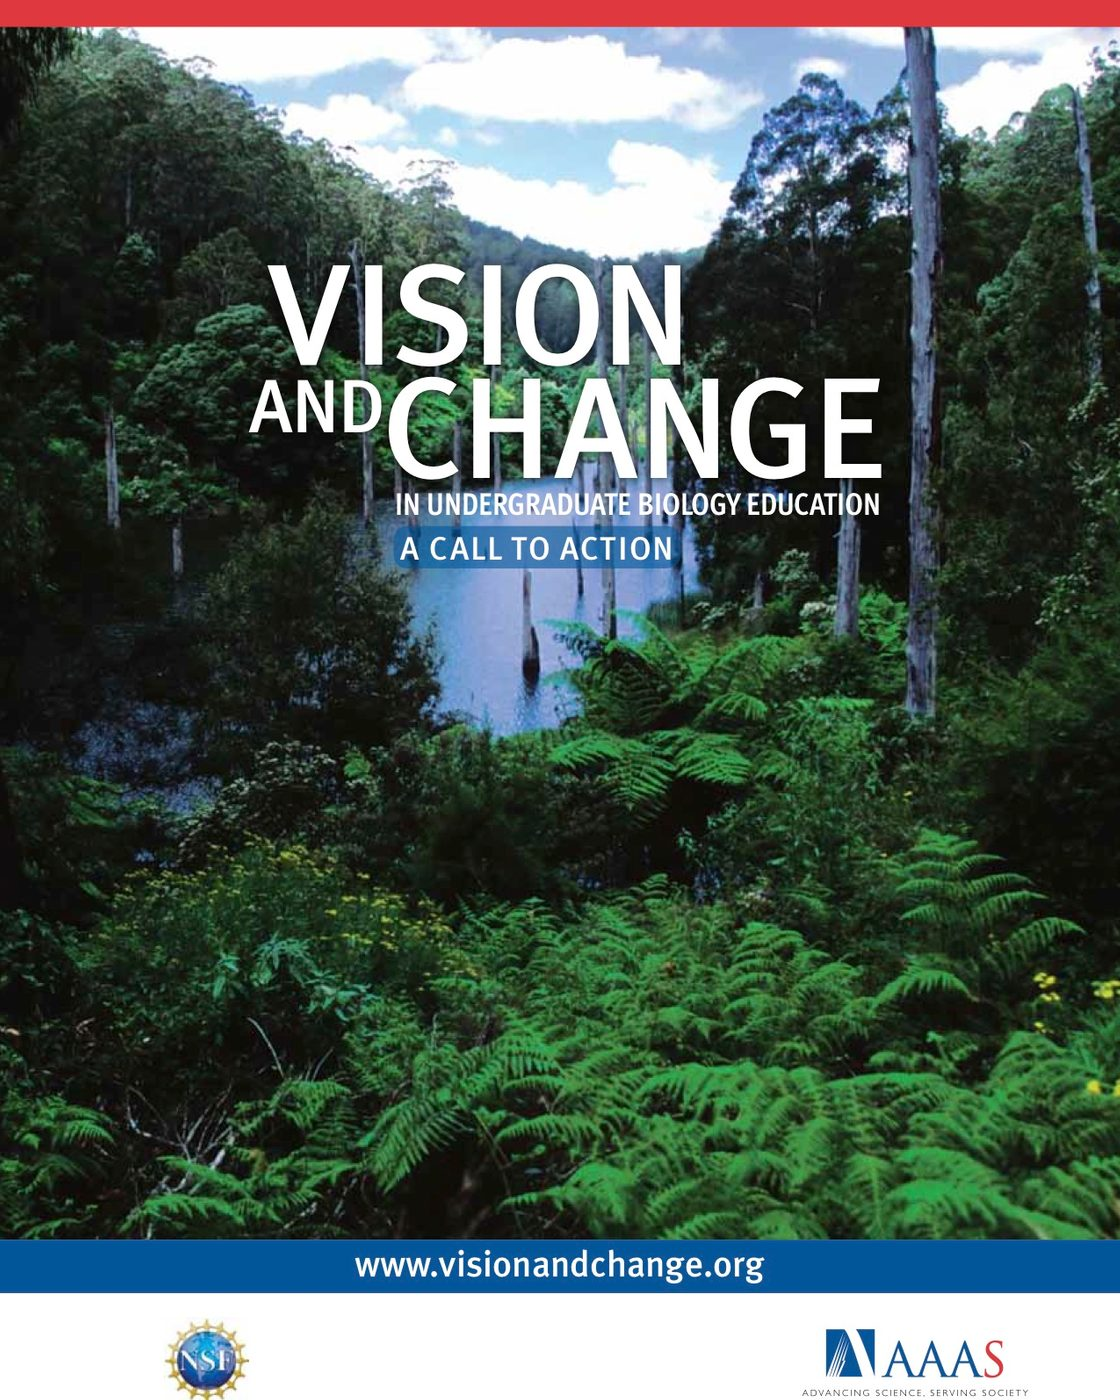 Vision and Change